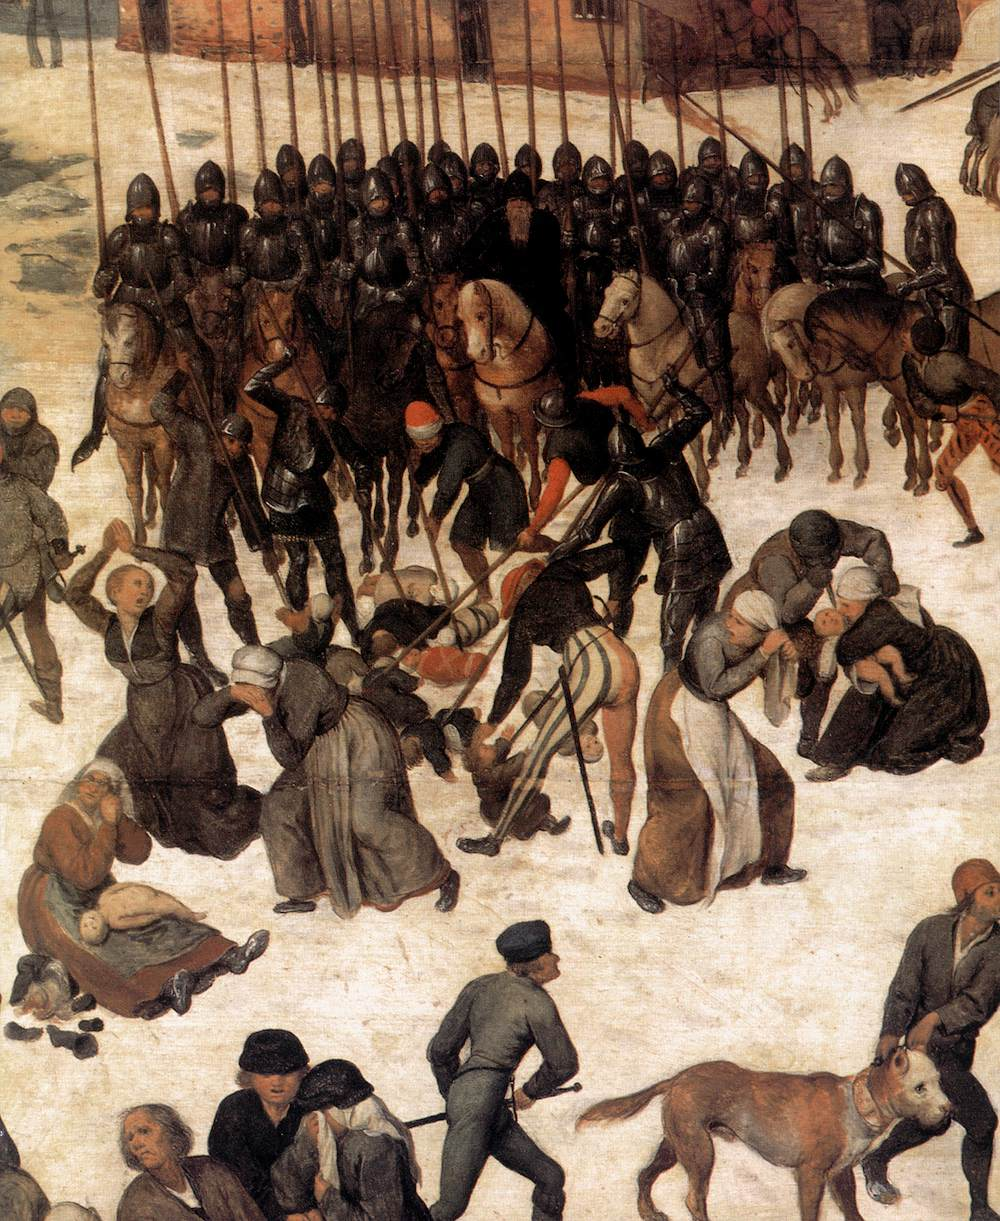 Pieter_Bruegel_the_Elder_-_The_Massacre_